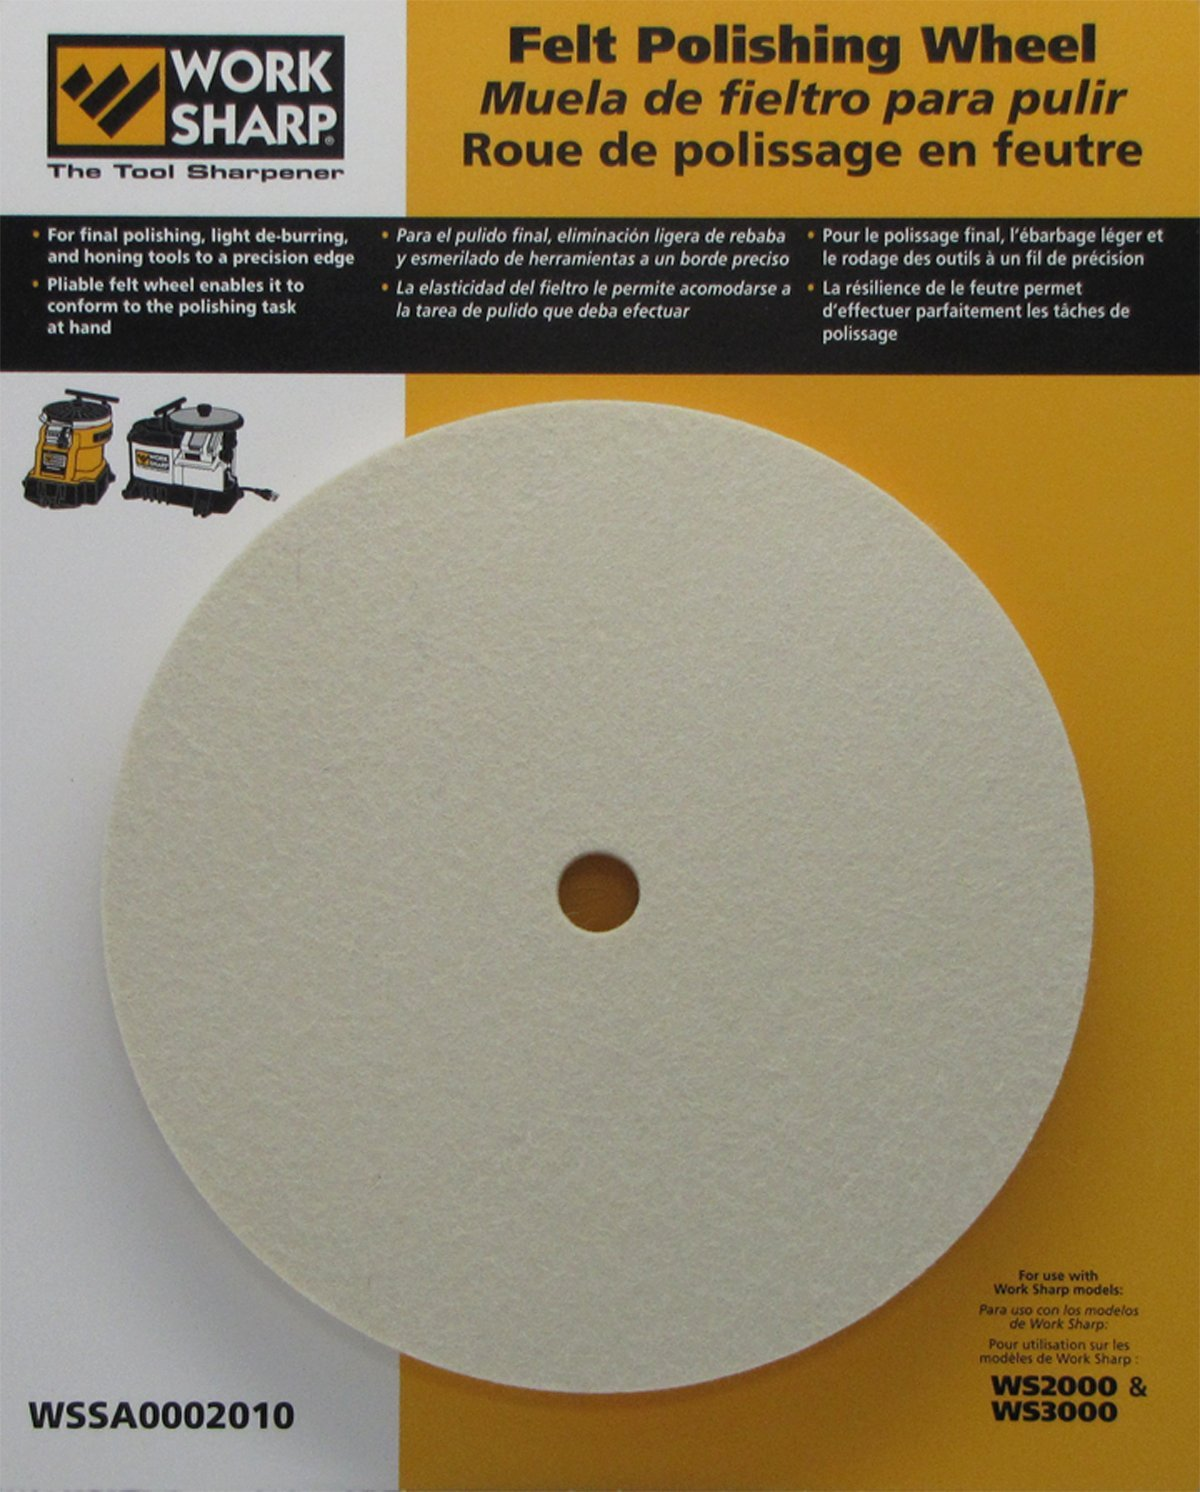 Work Sharp WSSA0002010 Felt Polishing Wheel